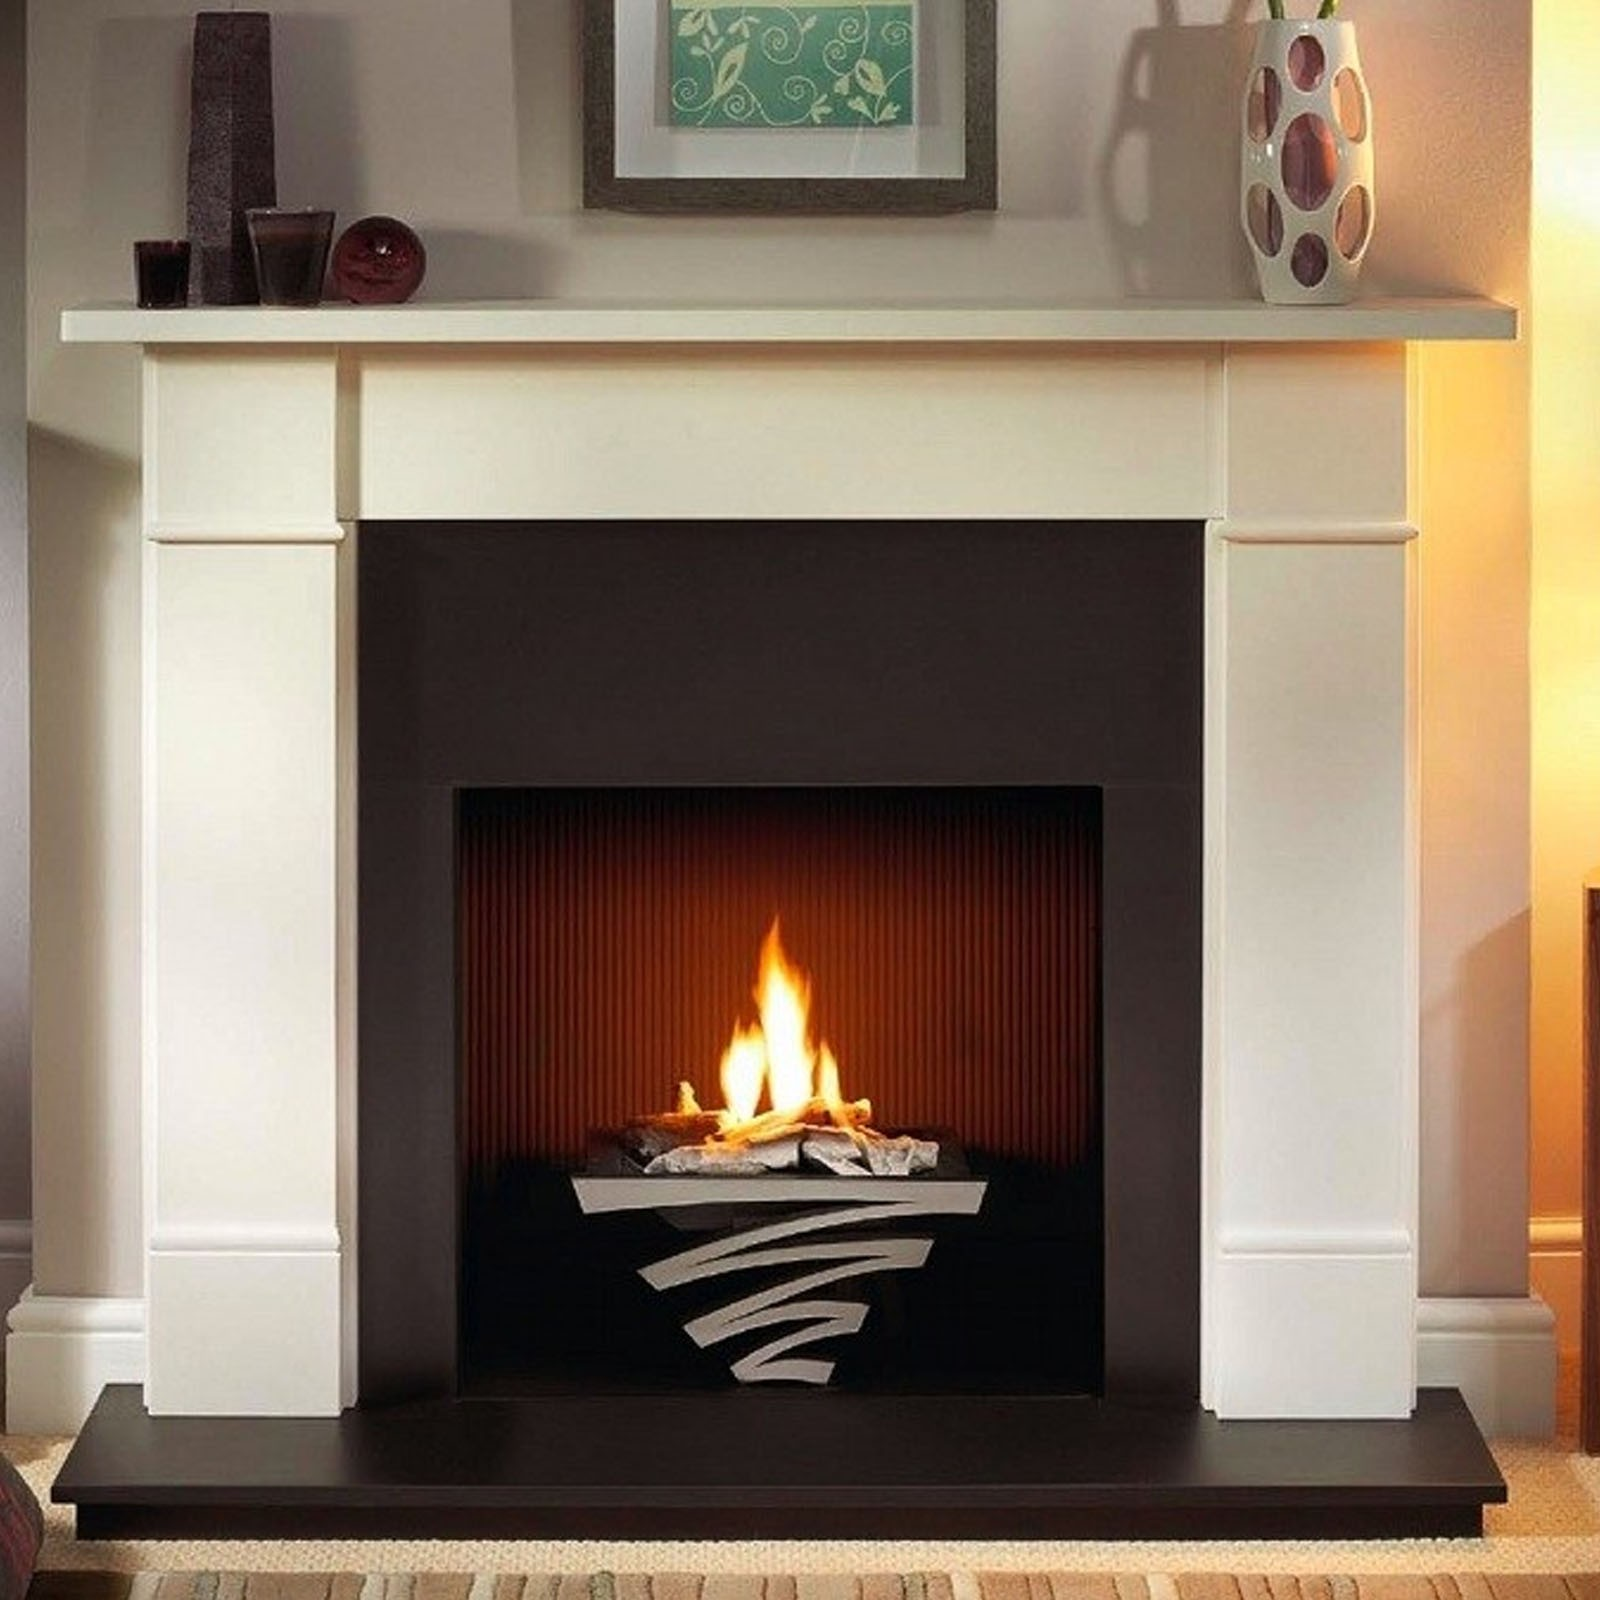 Bilder Kamin Incredible Value Gallery Brompton Stone Fireplace